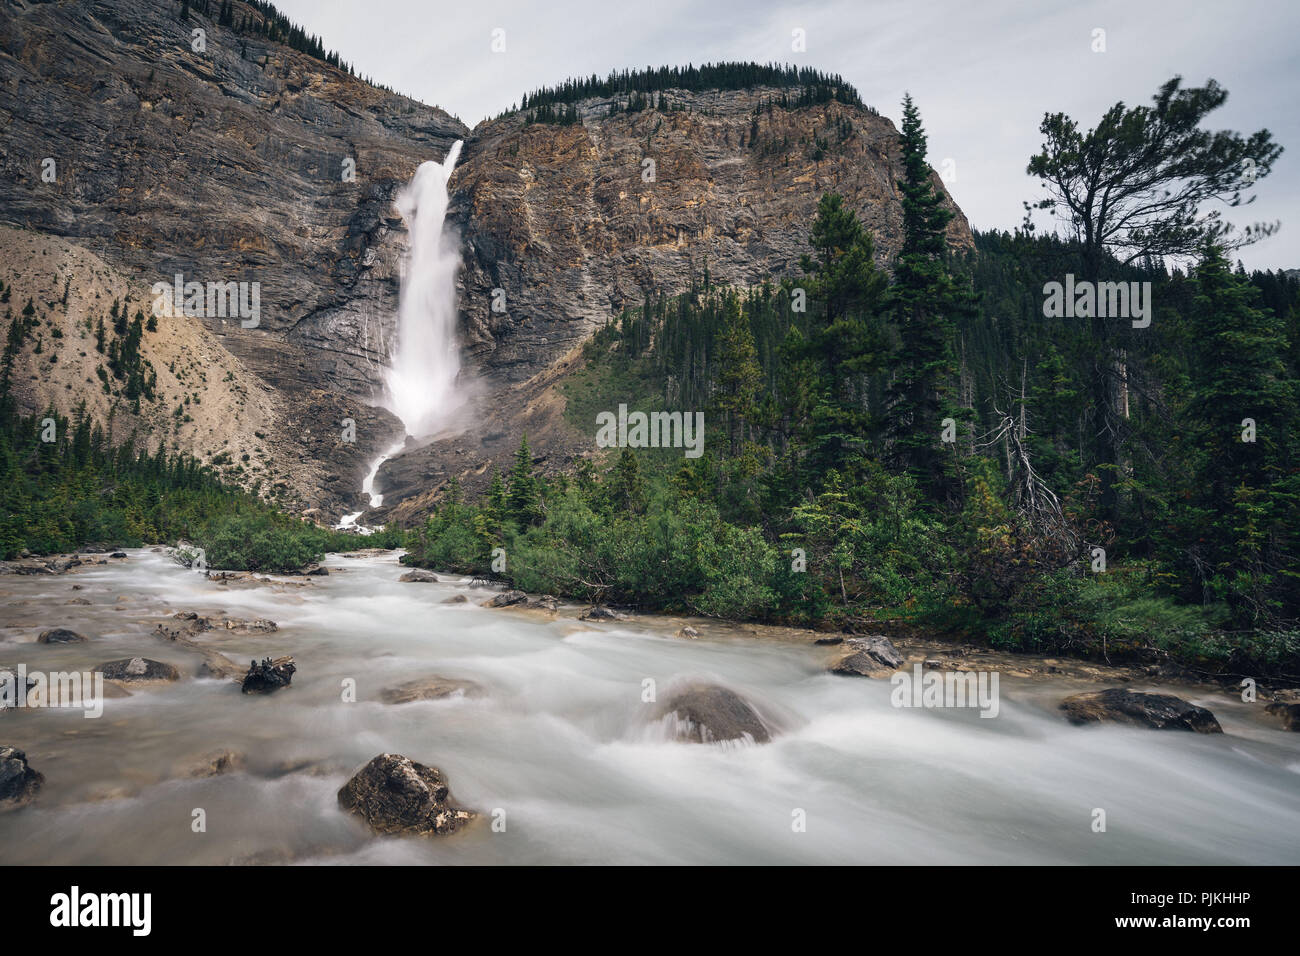 Takakkaw Falls, Yoho National Park, Canada Stock Photo